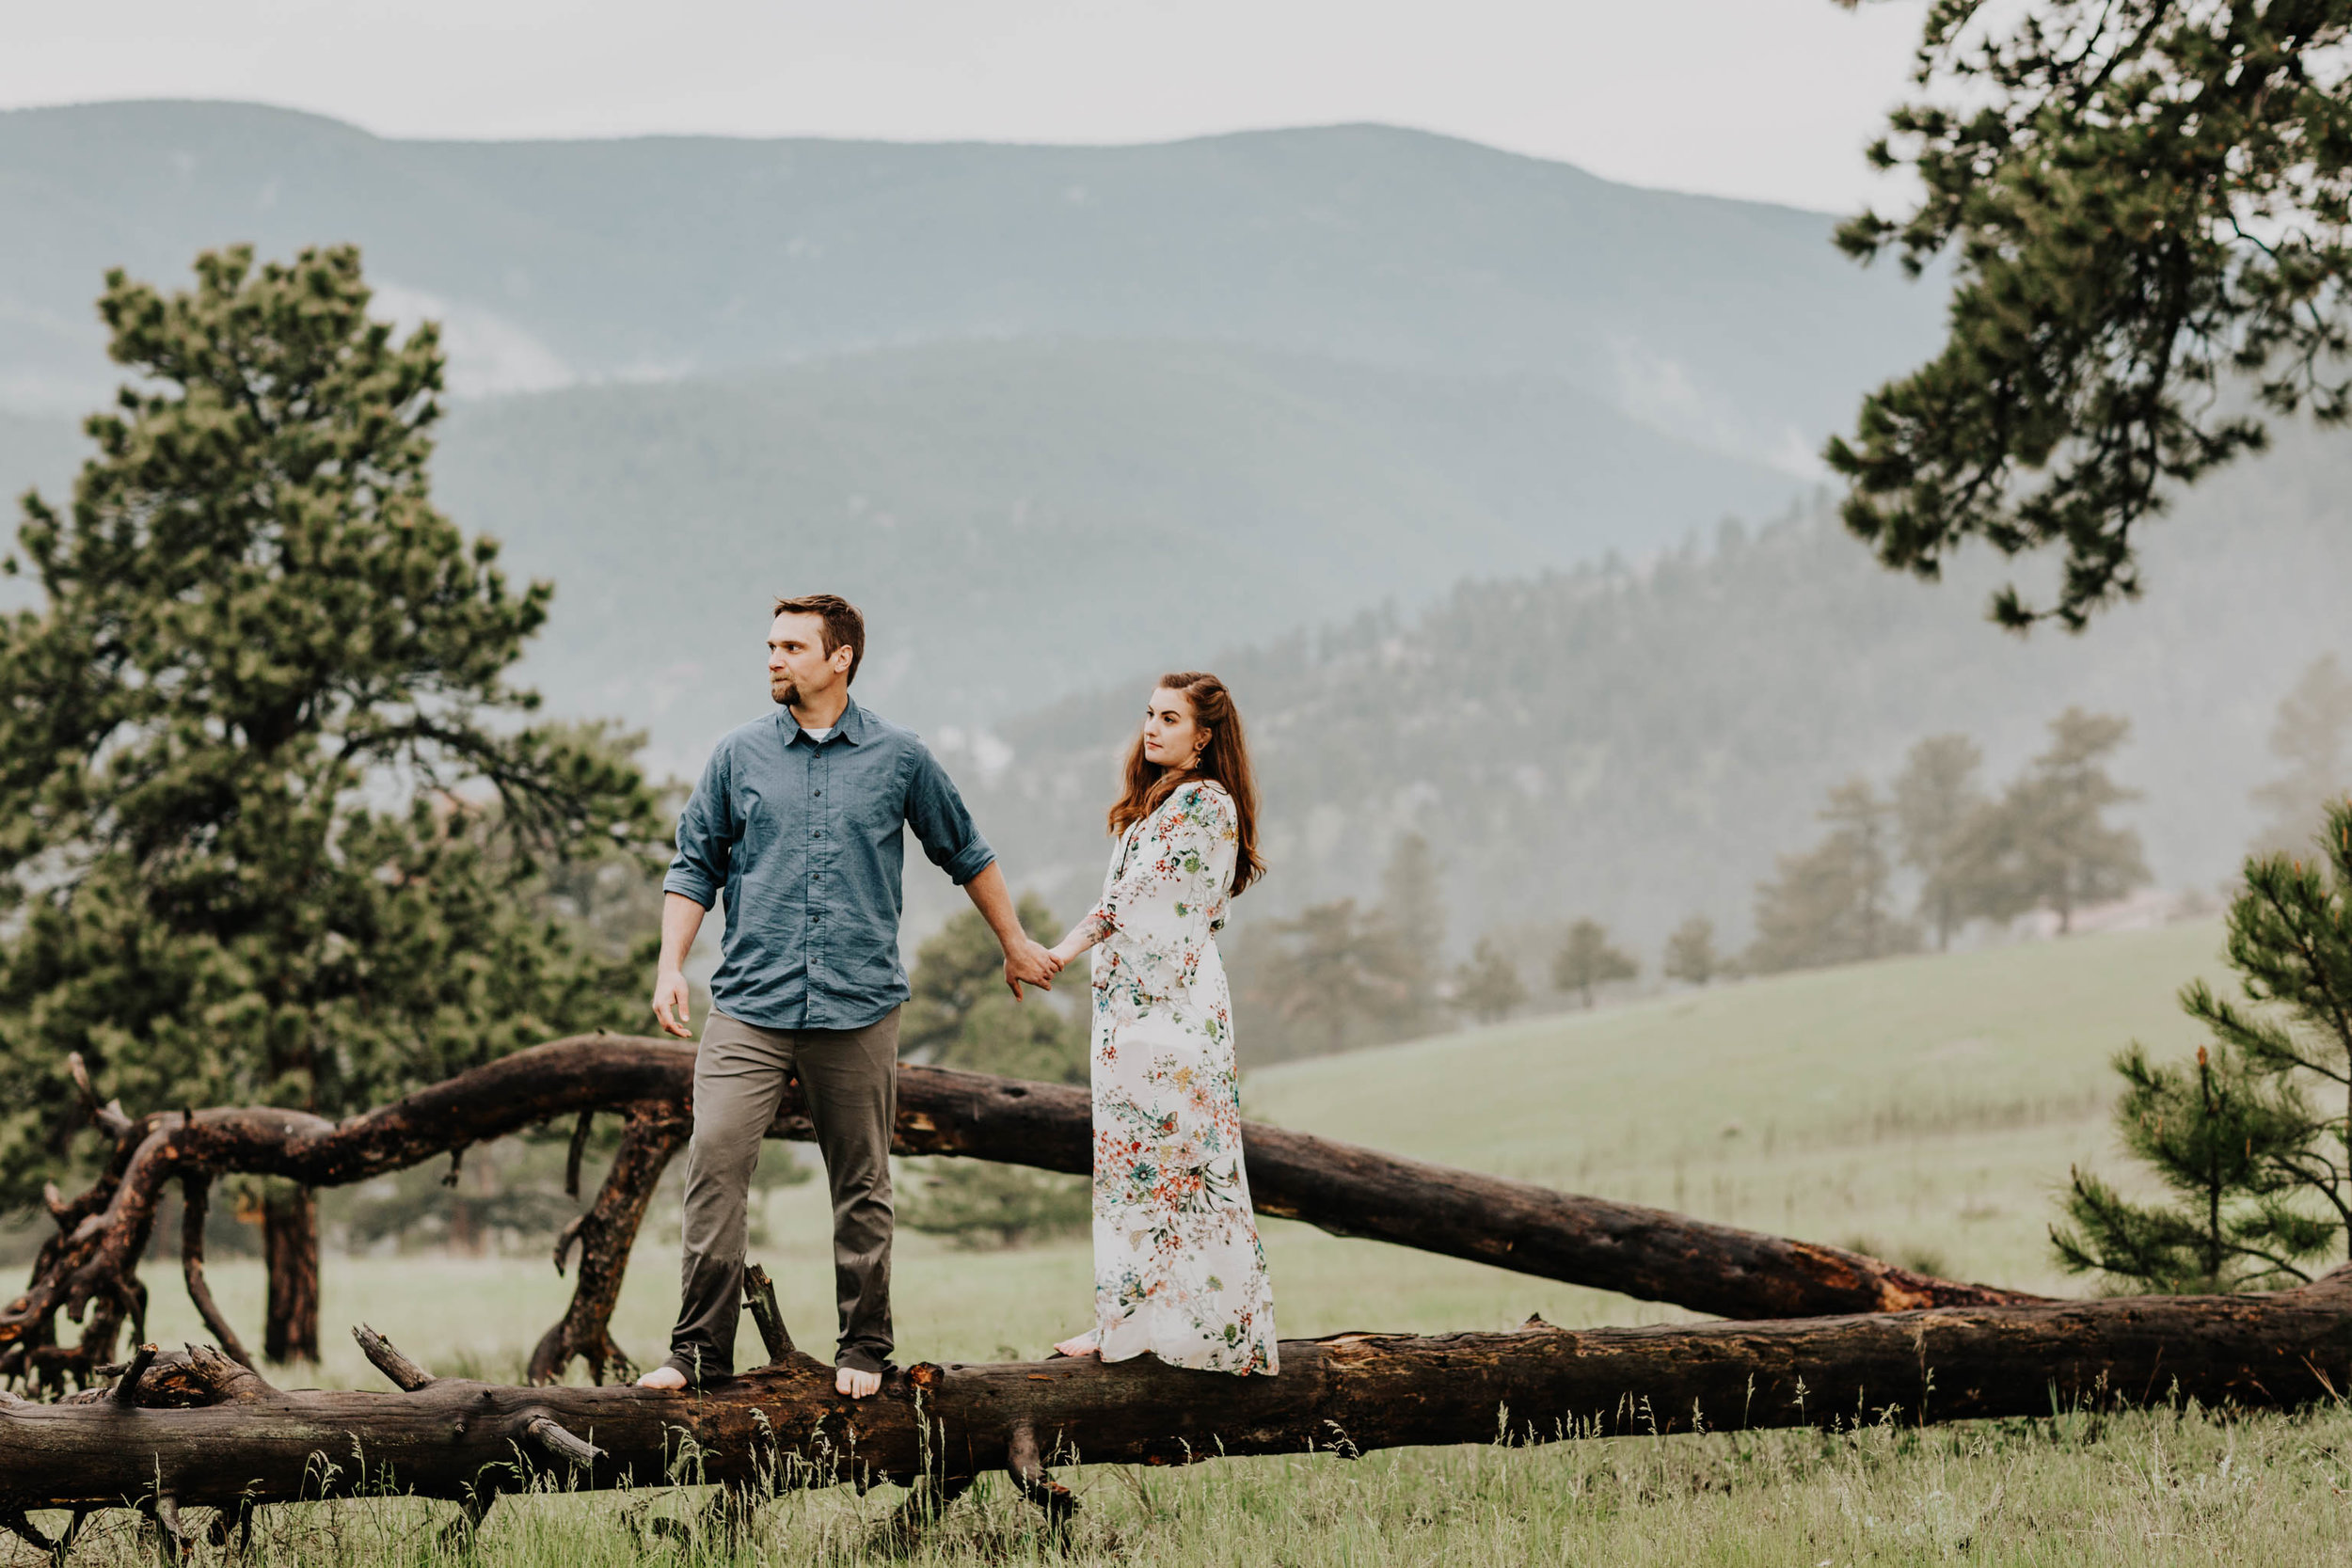 Sheena_Shahangian_Photography_Engagement_Photo_Shoot_Shelby_and_Andrew_Boulder_Colorado-102.jpg